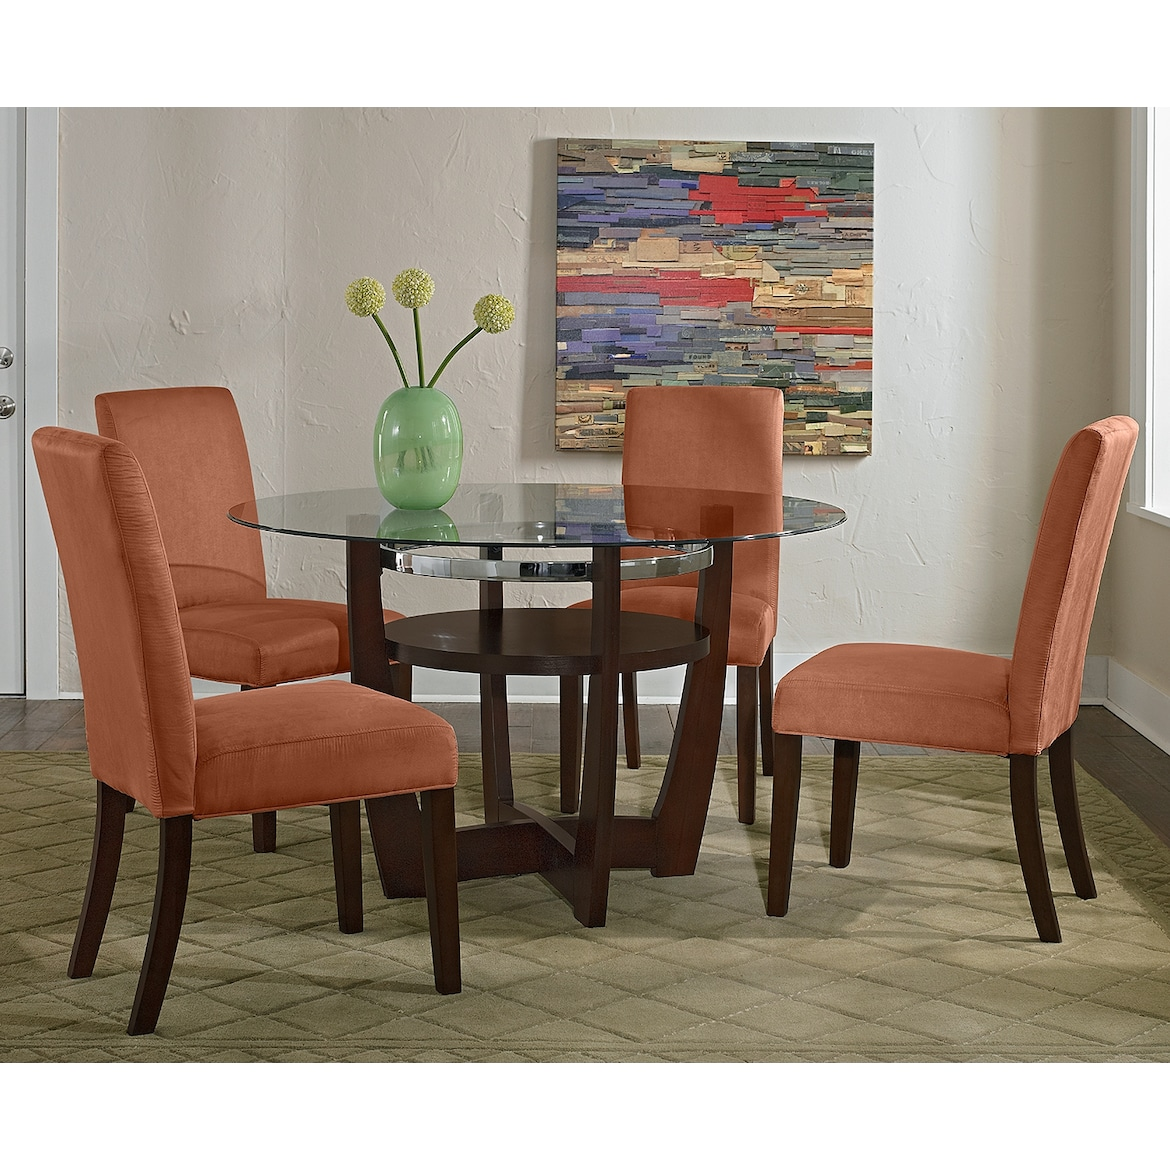 City Furmiture: Alcove Dinette With 4 Side Chairs - Orange